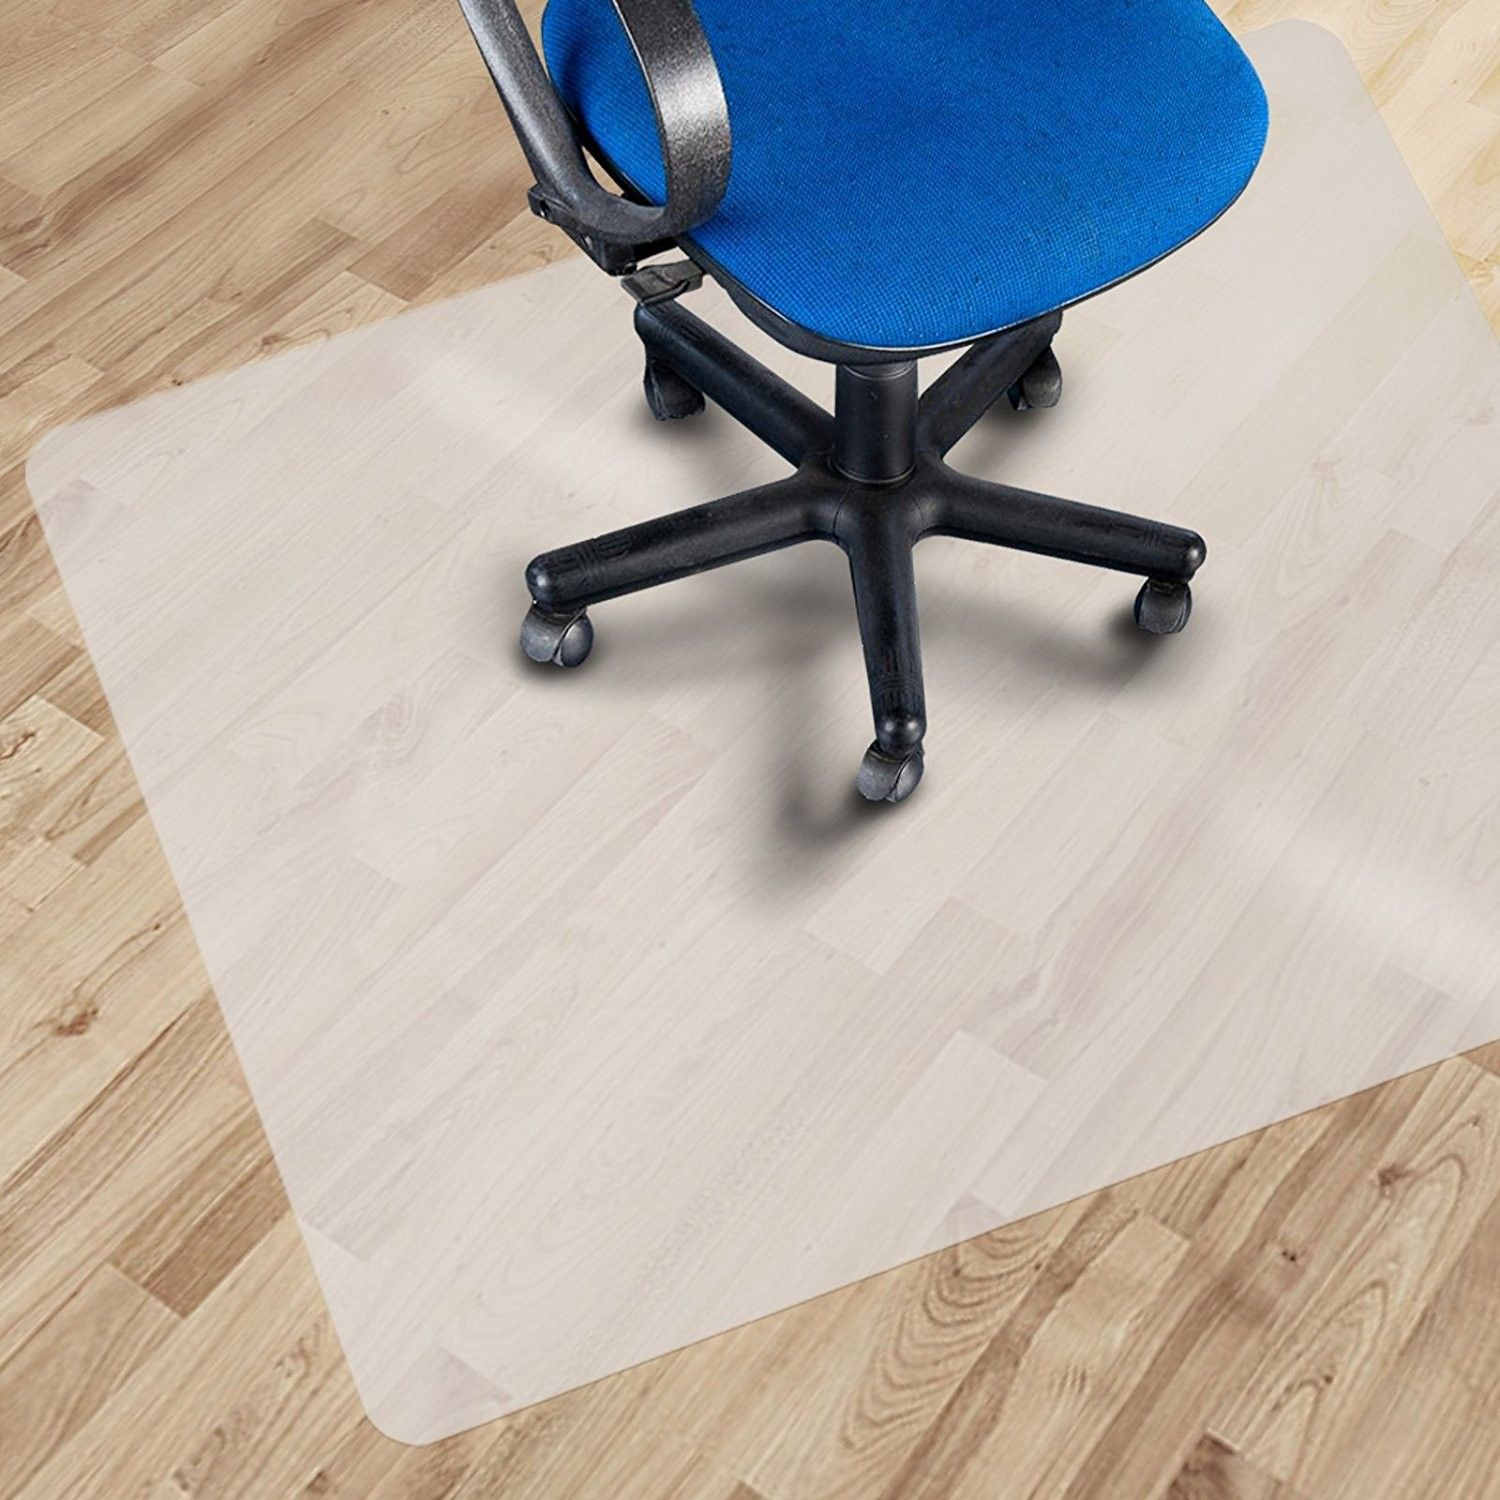 Plastic Floor Mat For Desk Chair Check More At Http Www Intown